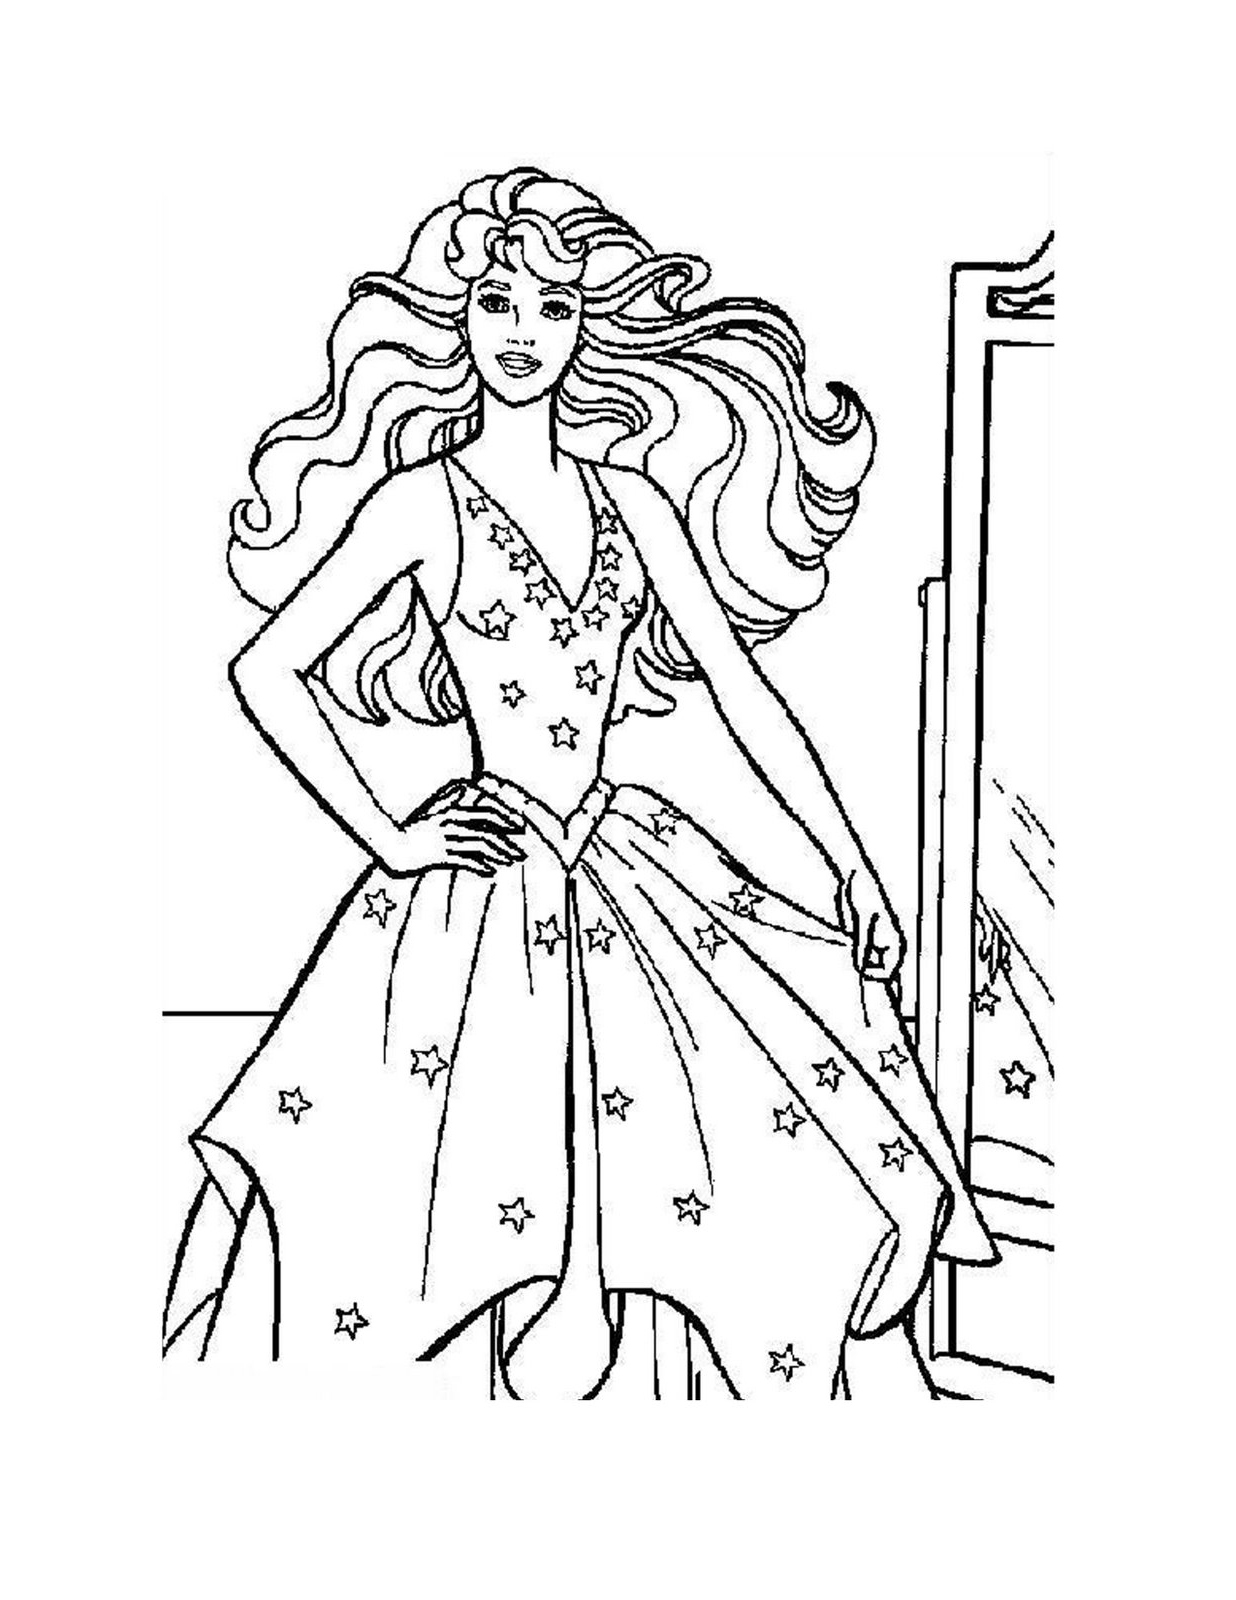 Princess Outline Drawing at GetDrawings.com | Free for ...